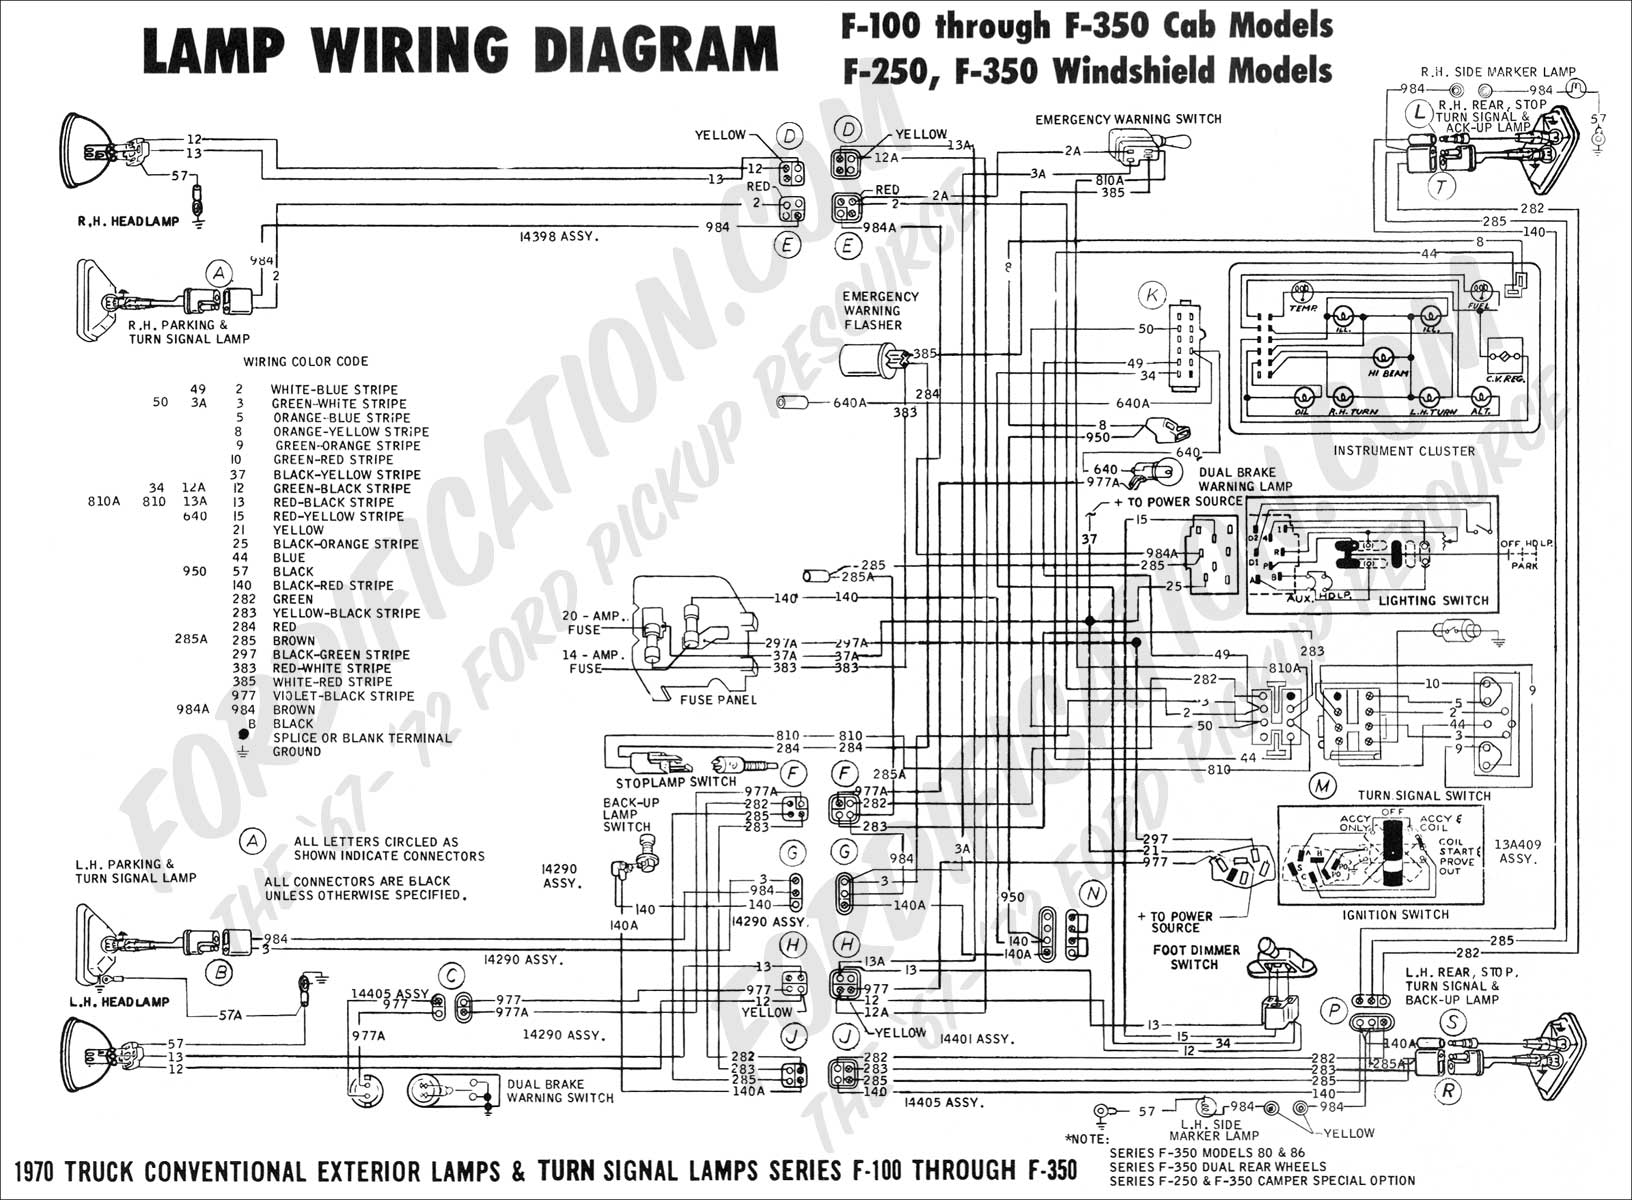 1999 ford f750 fuse diagram Images Gallery